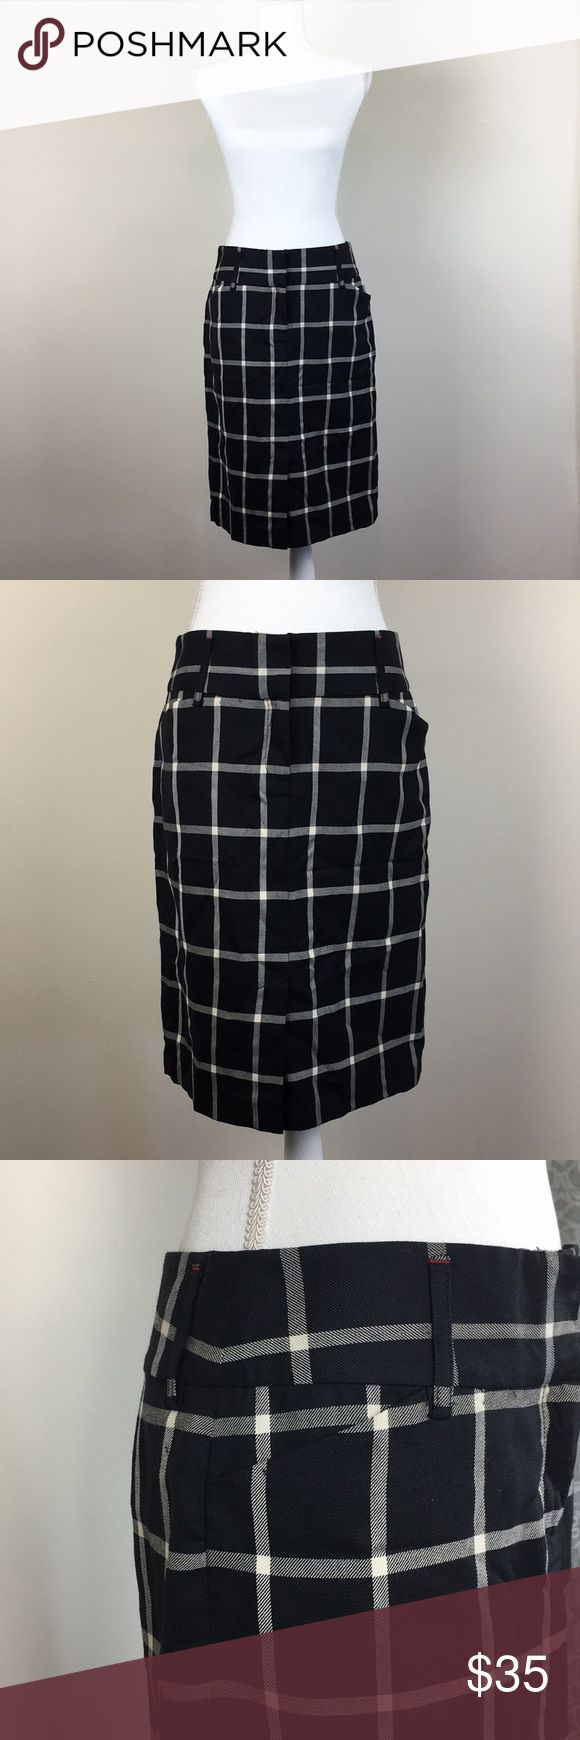 """Tommy Hilfiger Black and White Wool Skirt Size 6 Has pockets! Tommy Hilfiger Black and White Windowpane Wool Skirt Size 6. Front zipper closure with button and two clasps. Slit in front and back. Belt loops. Gently used. No flaws.  Waist: 15.5"""" Skirt Length: 23"""" Tommy Hilfiger Skirts"""